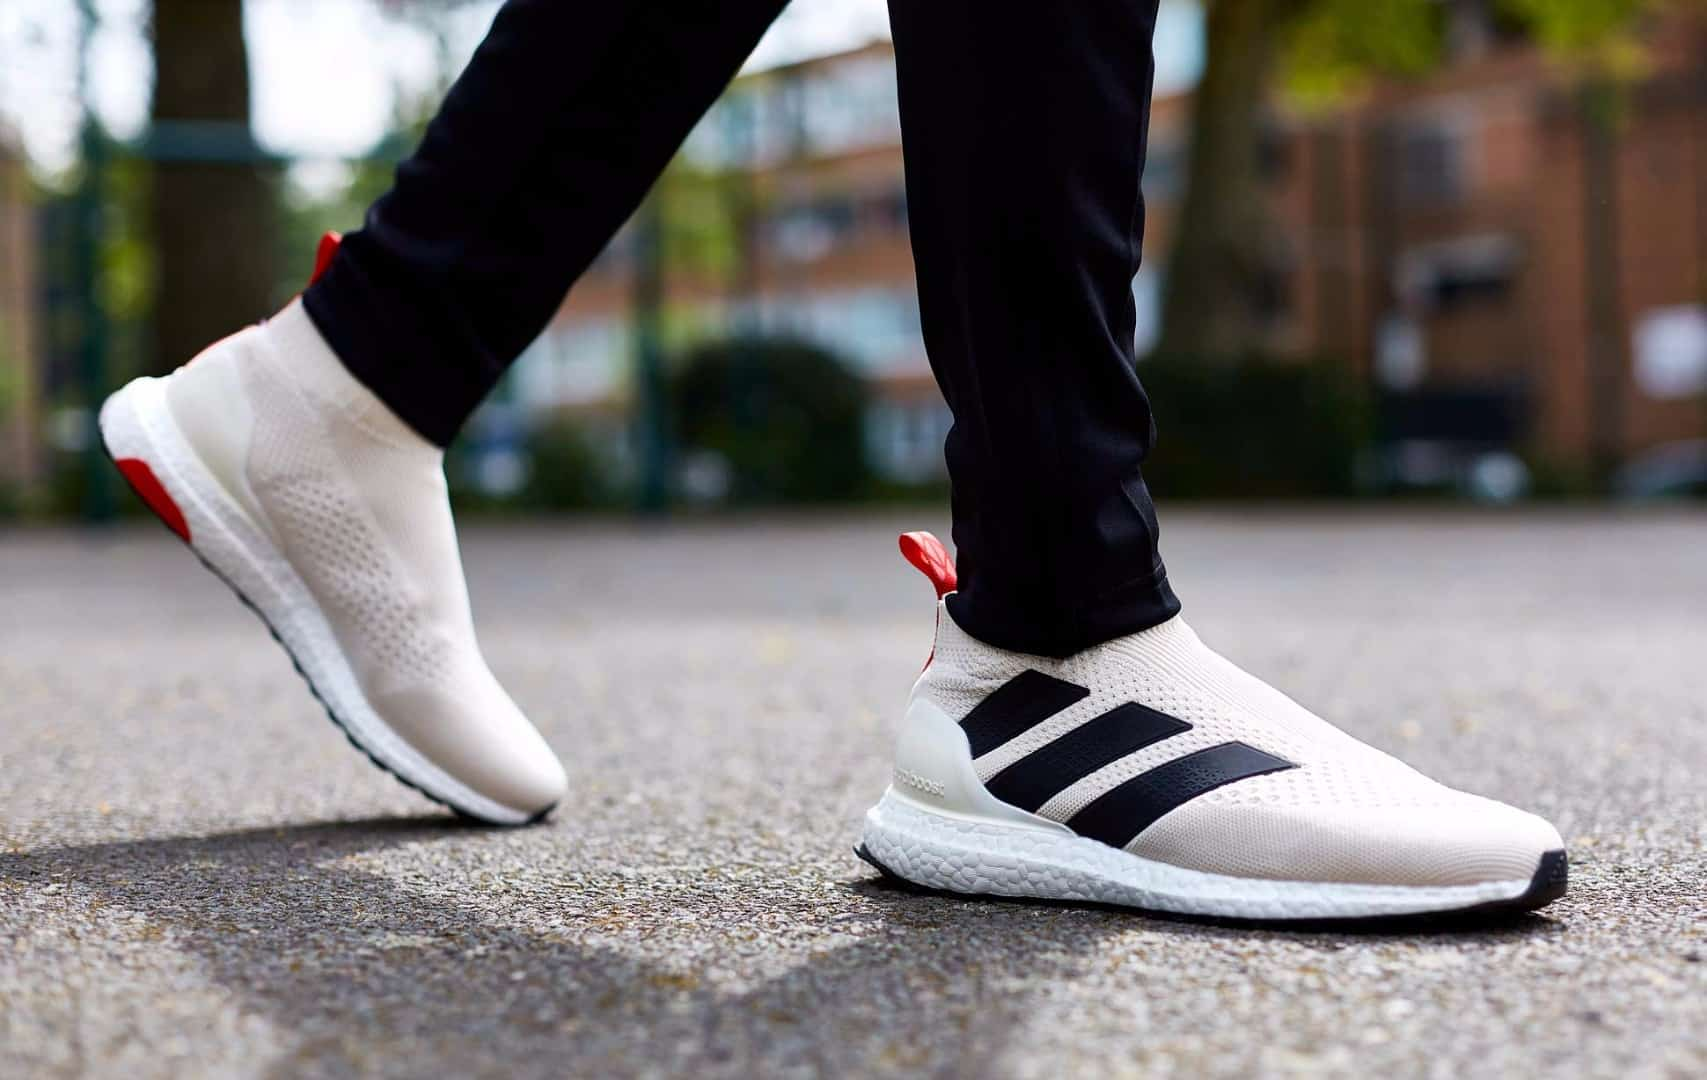 adidas ace 16 purecontrol ultra boost champagne